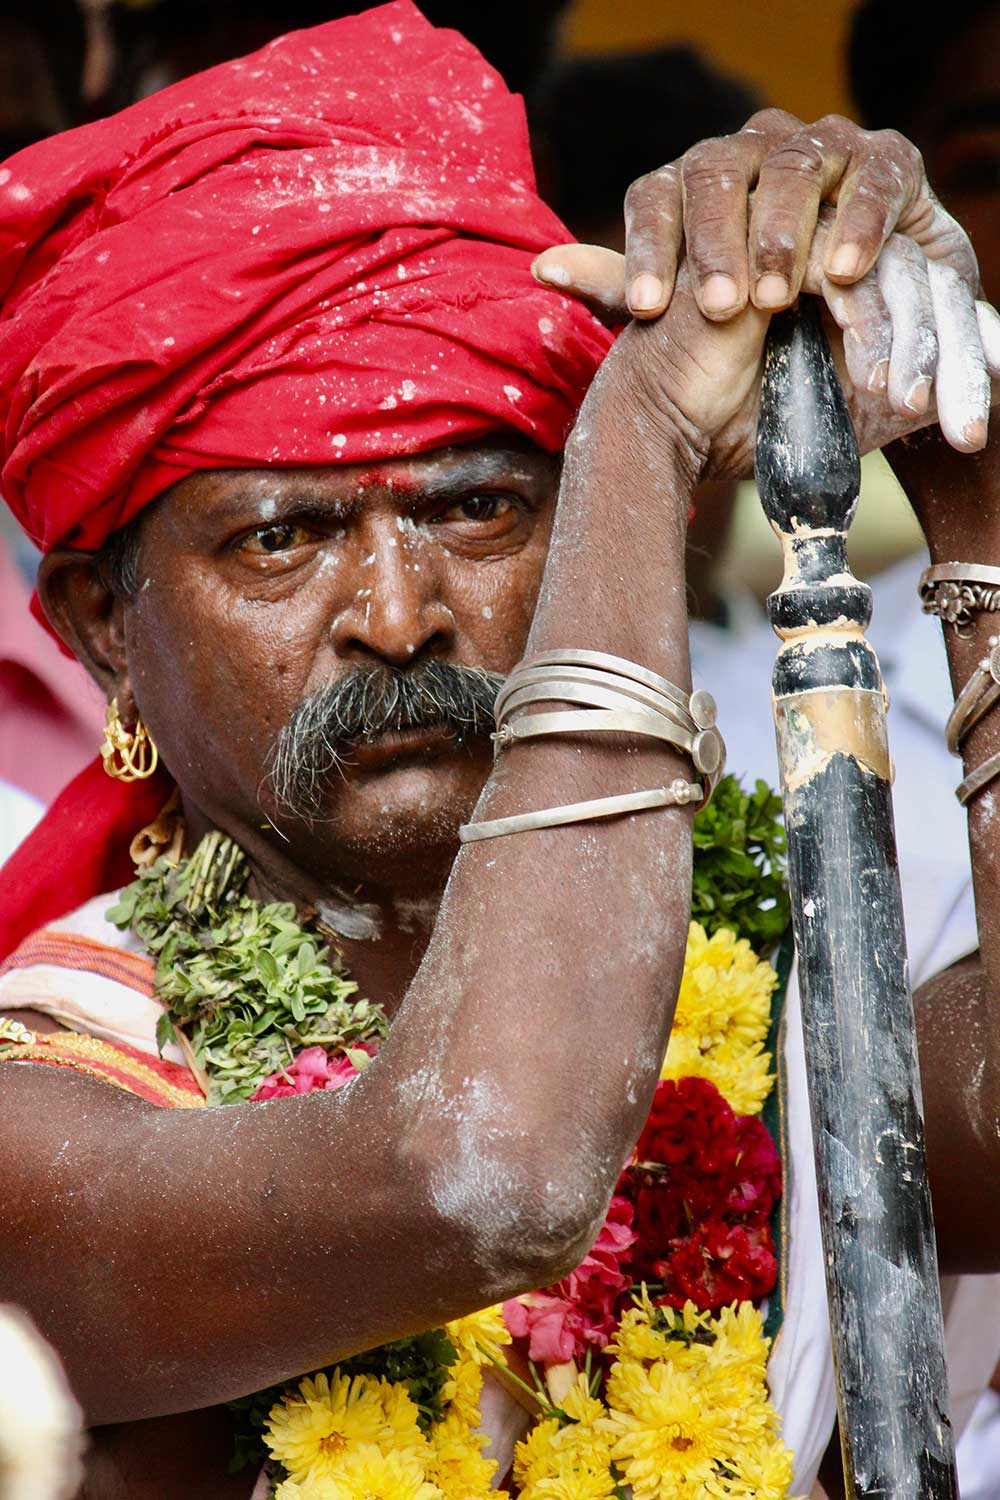 Man at the Pongal Festival in India